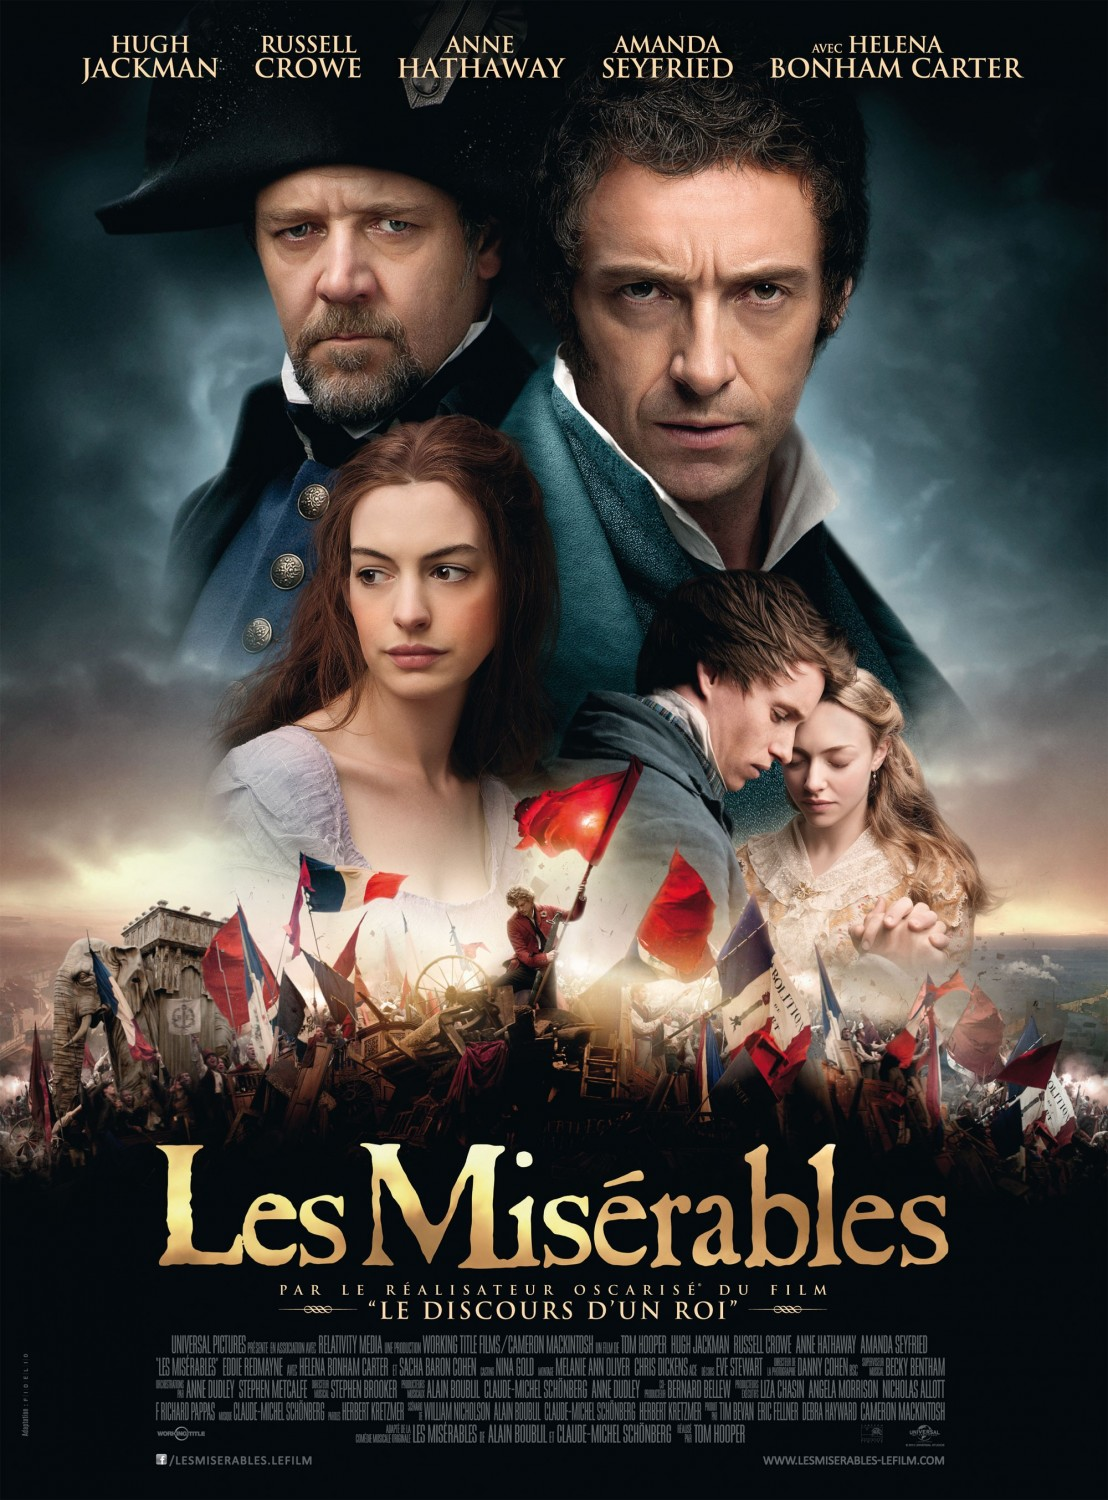 Les Miserables (2012) | Cinemorgue Wiki | FANDOM powered